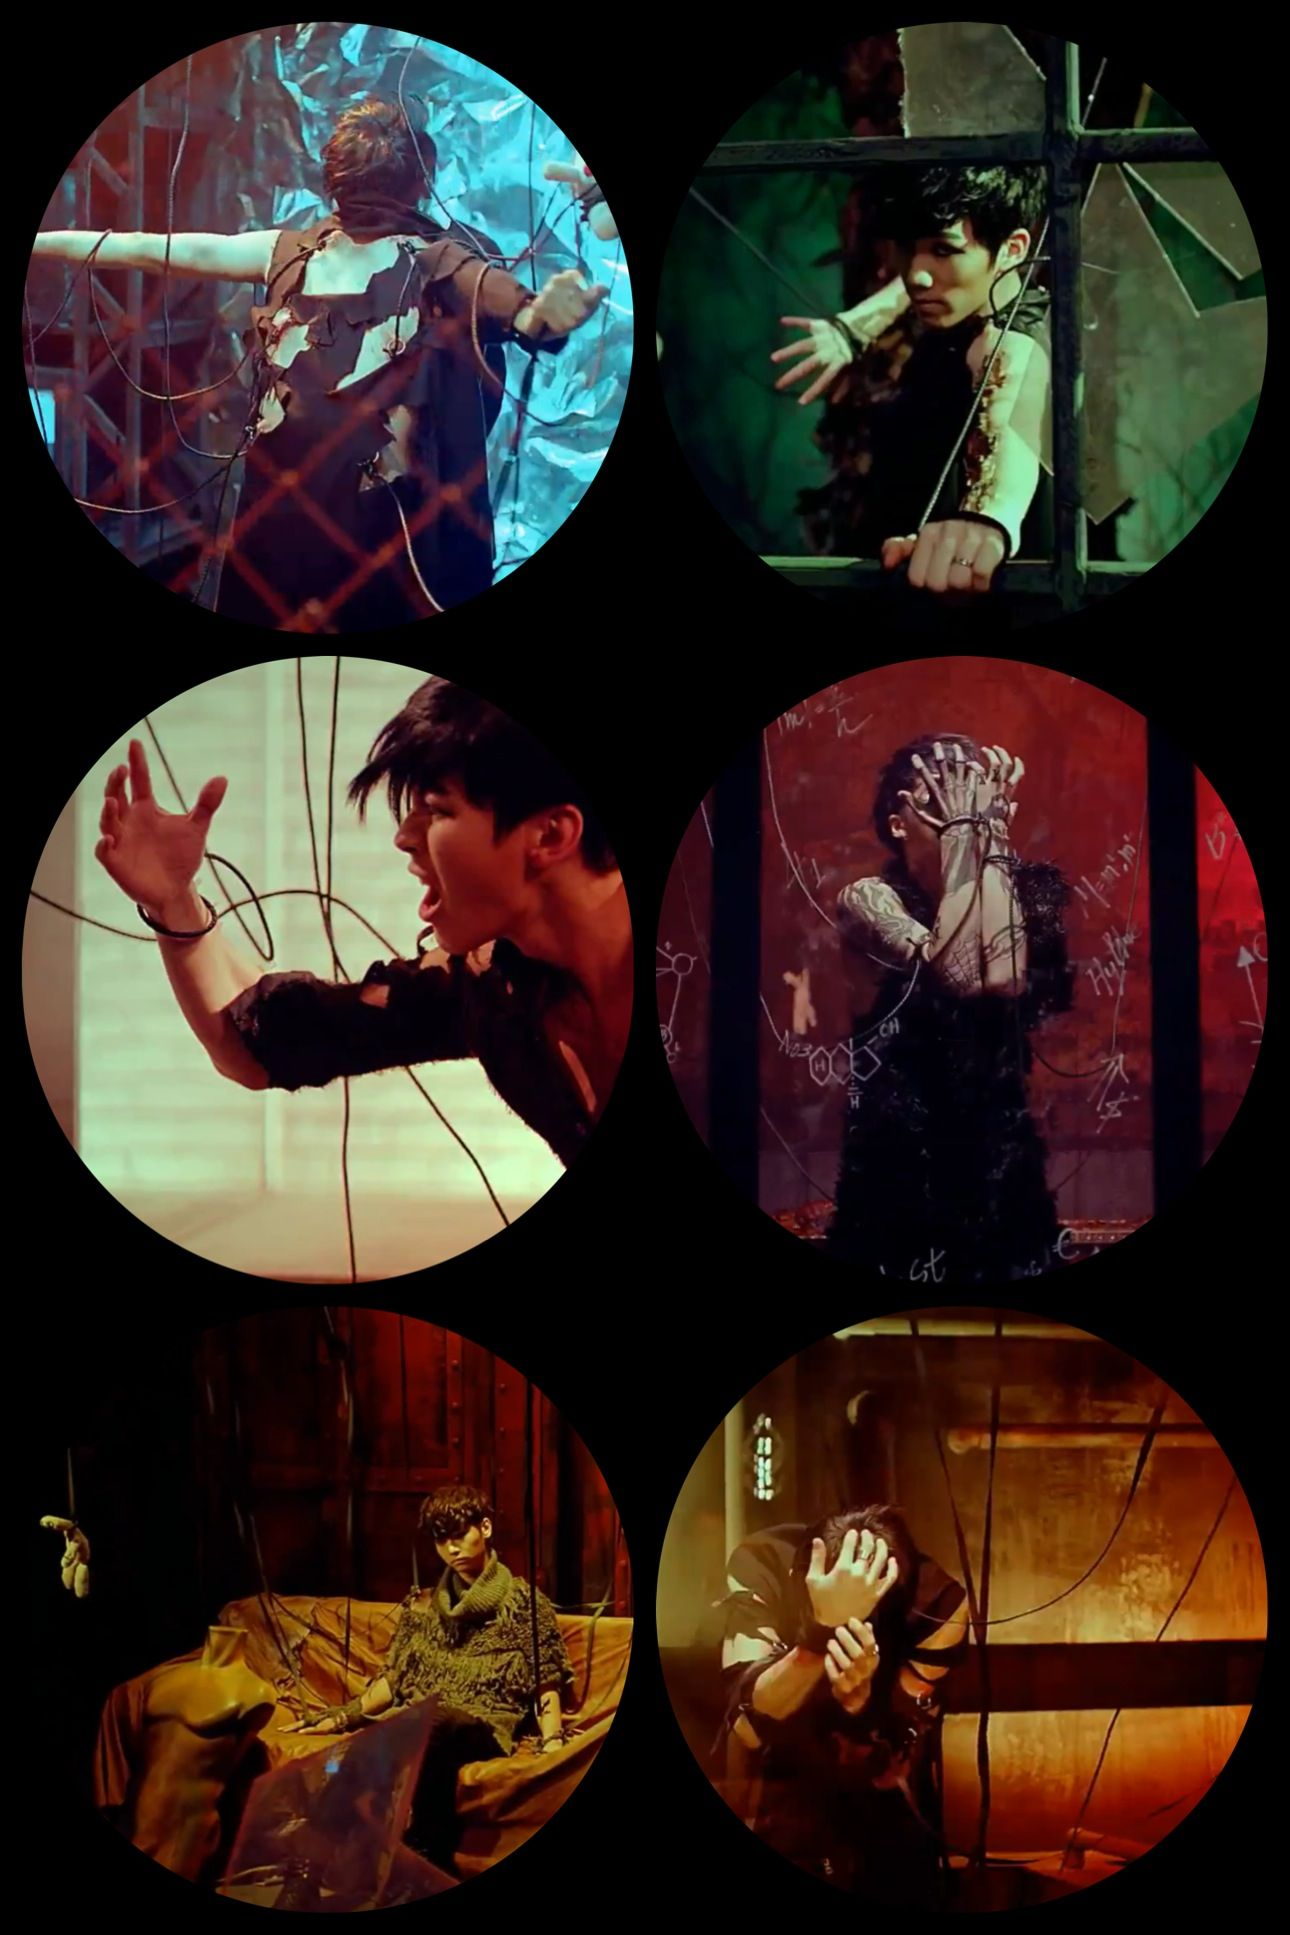 So Obsessed With This Song Lately I Wanna Learn The Dance Vixx Voodoo Doll Vixx Wallpaper Vixx Voodoo Doll Vixx Voodoo